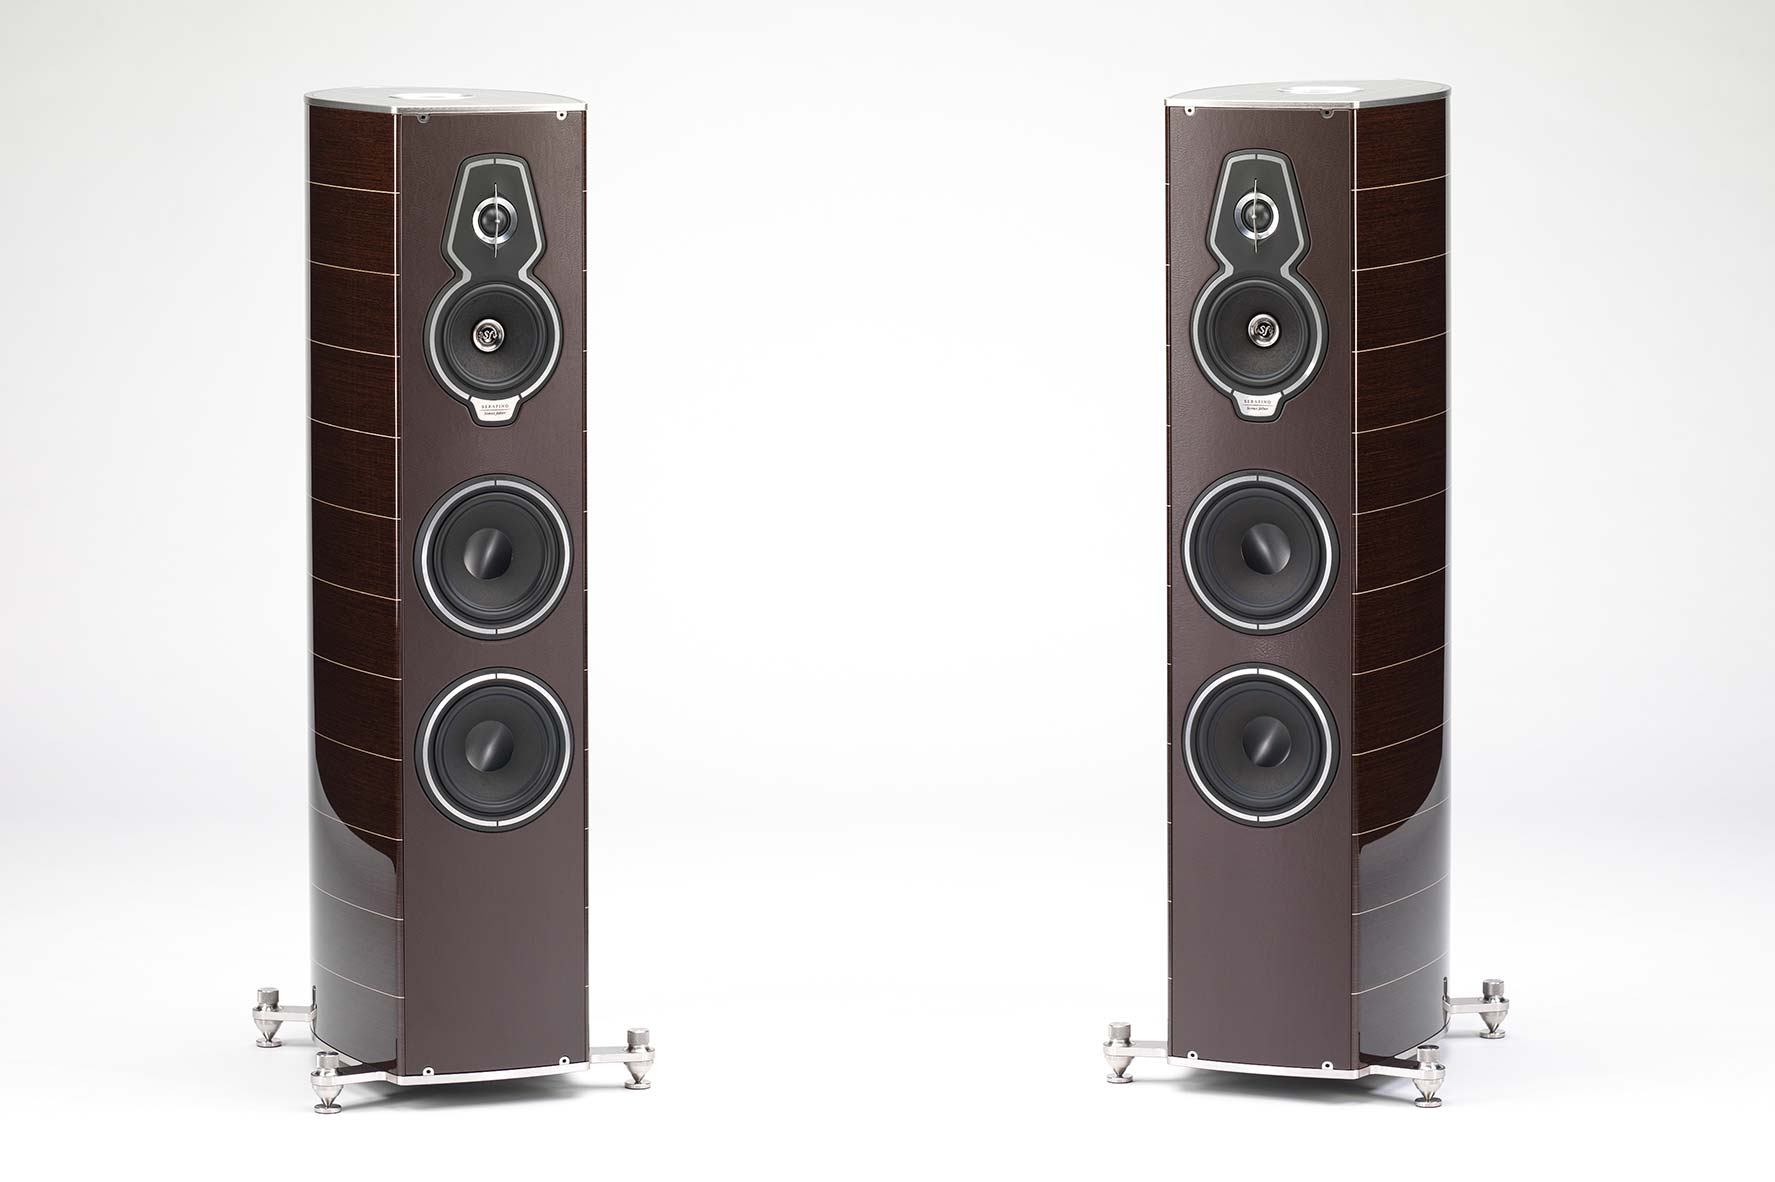 High End Speakers >> High End Speaker Serafino Tradition Much More Than A Shrunk Down